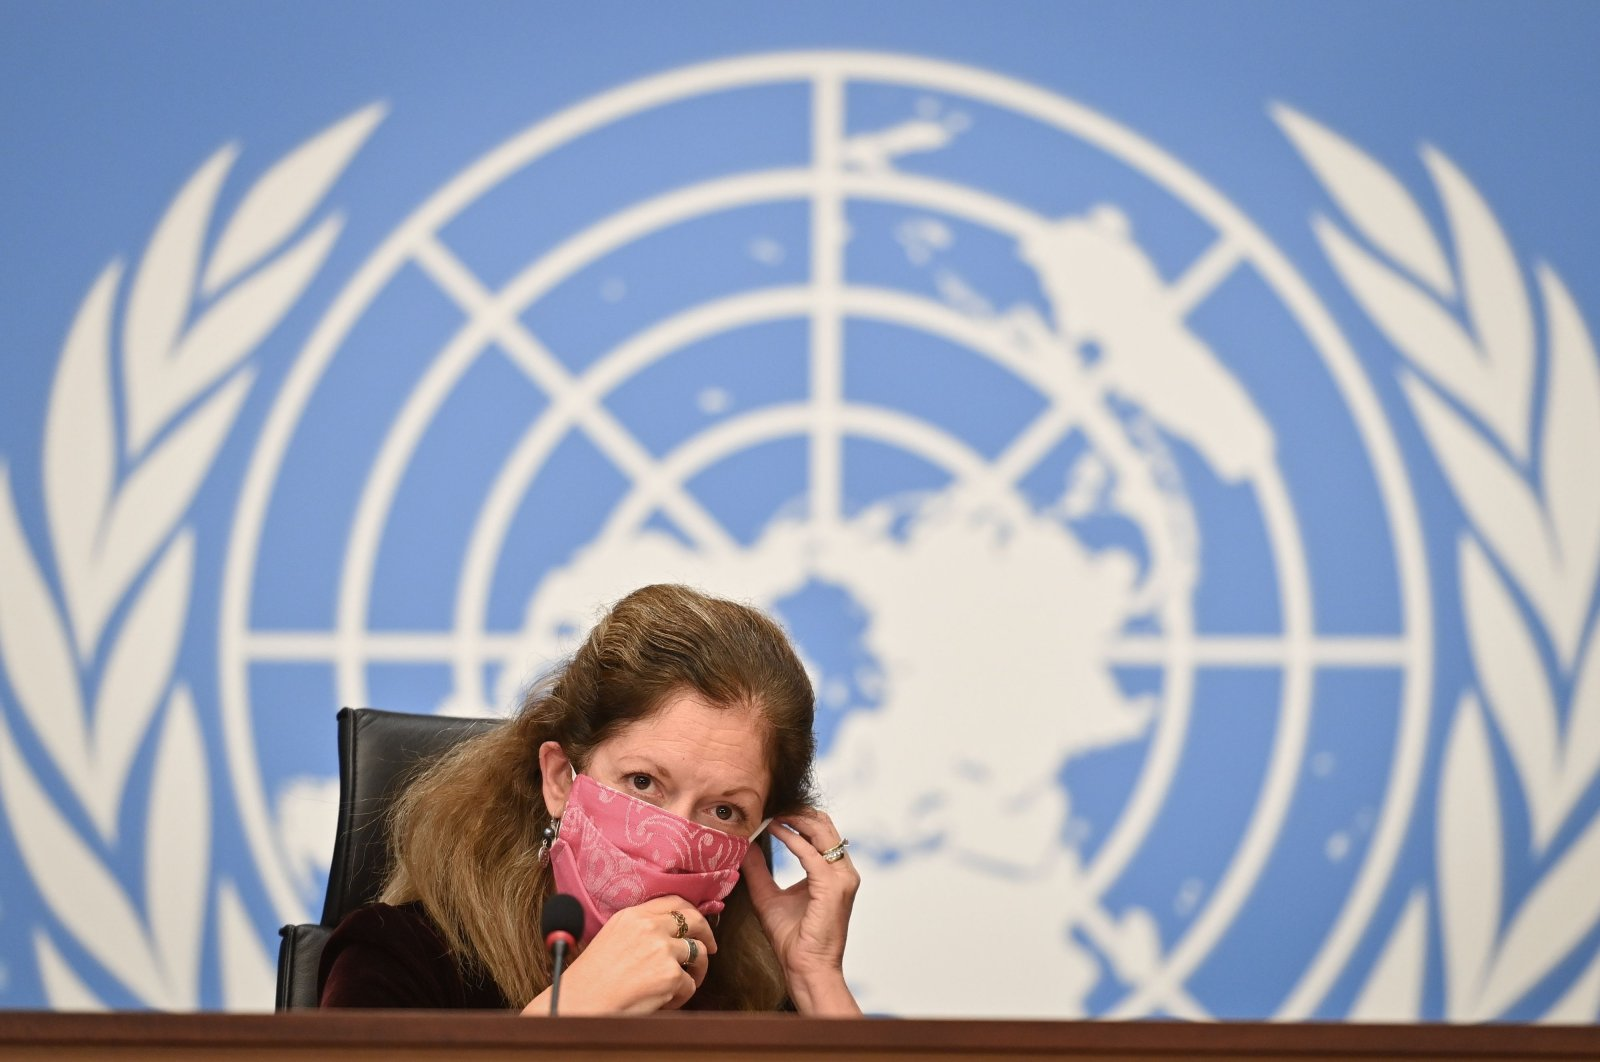 Deputy Special Representative of the UN Secretary-General for Political Affairs in Libya Stephanie Williams wears her protective face mask after a press conference on talks between the rival factions in the Libya conflict on Oct. 21, 2020 at the United Nations offices in Geneva. (AFP Photo)